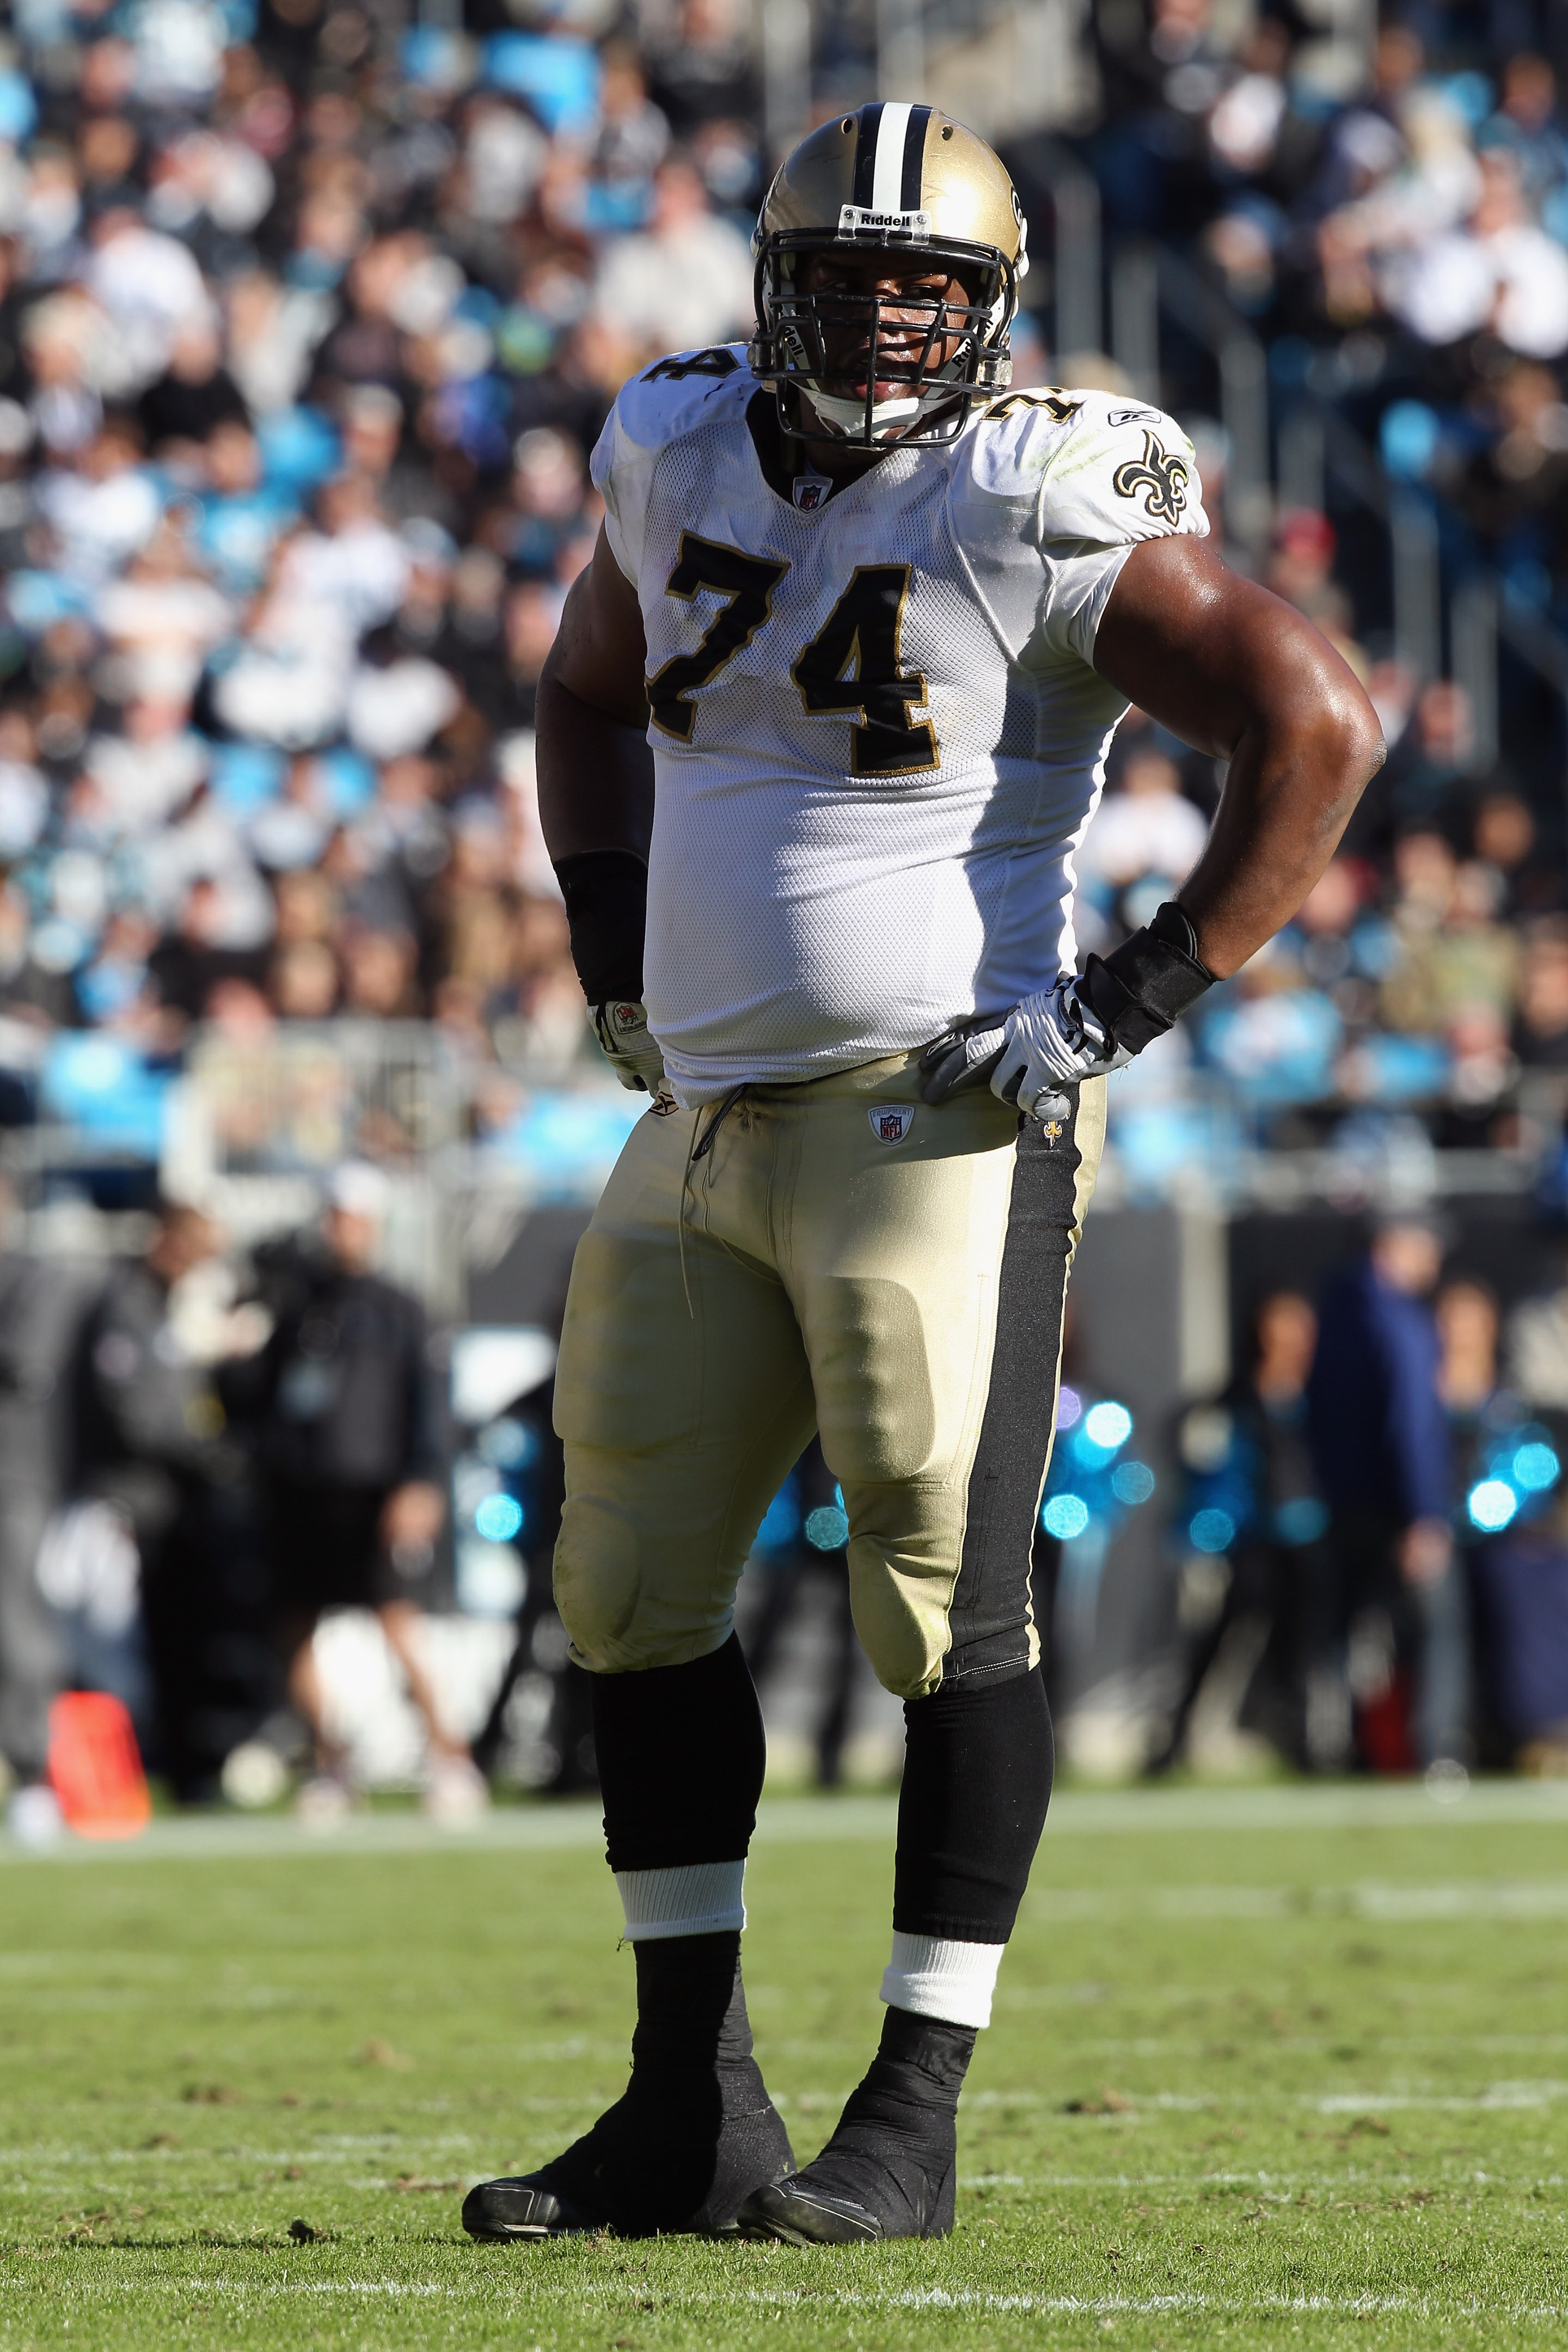 Bushrod struggled at left tackle this season, and might not be a priority for the Saints this offseason.